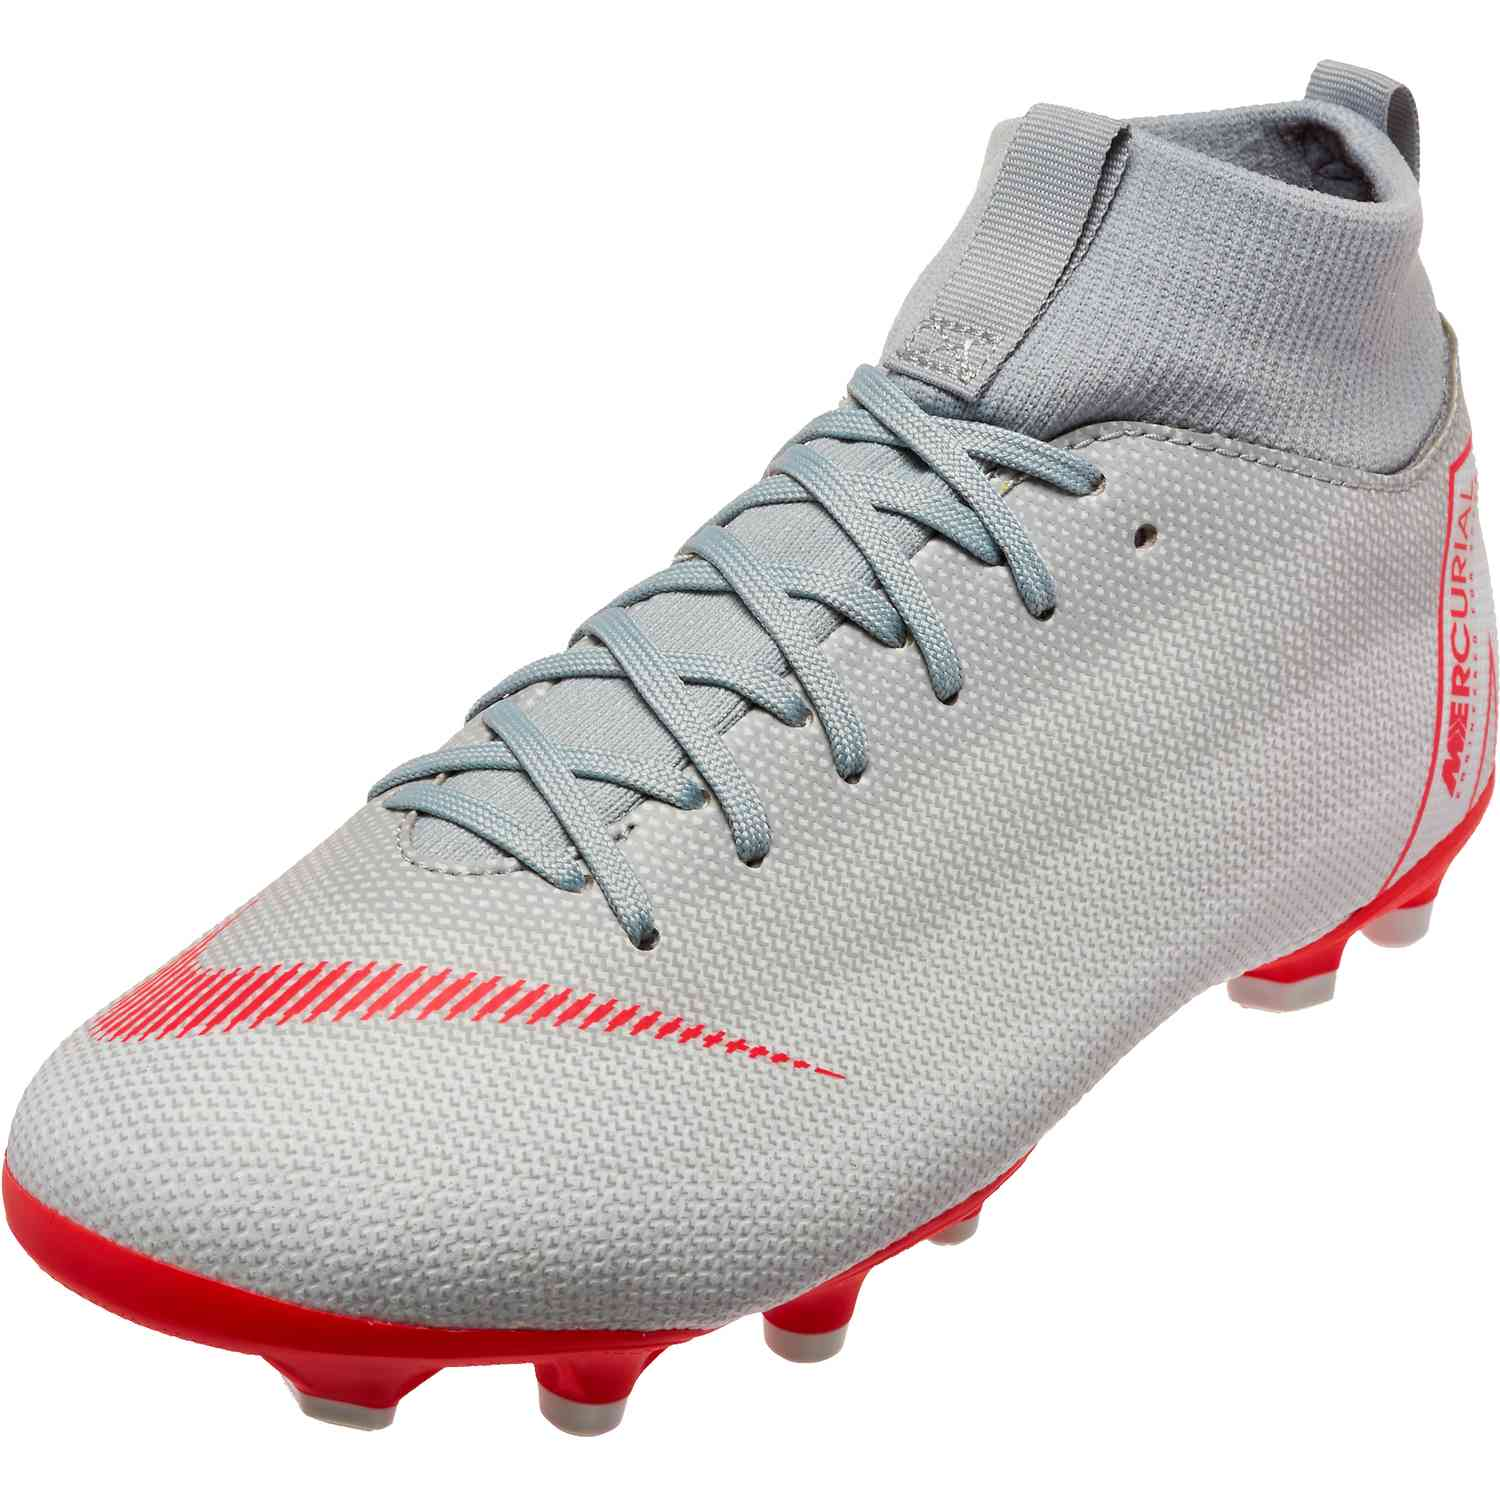 brand new 5acf1 b8471 Youth Nike Mercurial Superfly 6 Academy MG – Wolf Grey Light Crimson Pure  Platinum